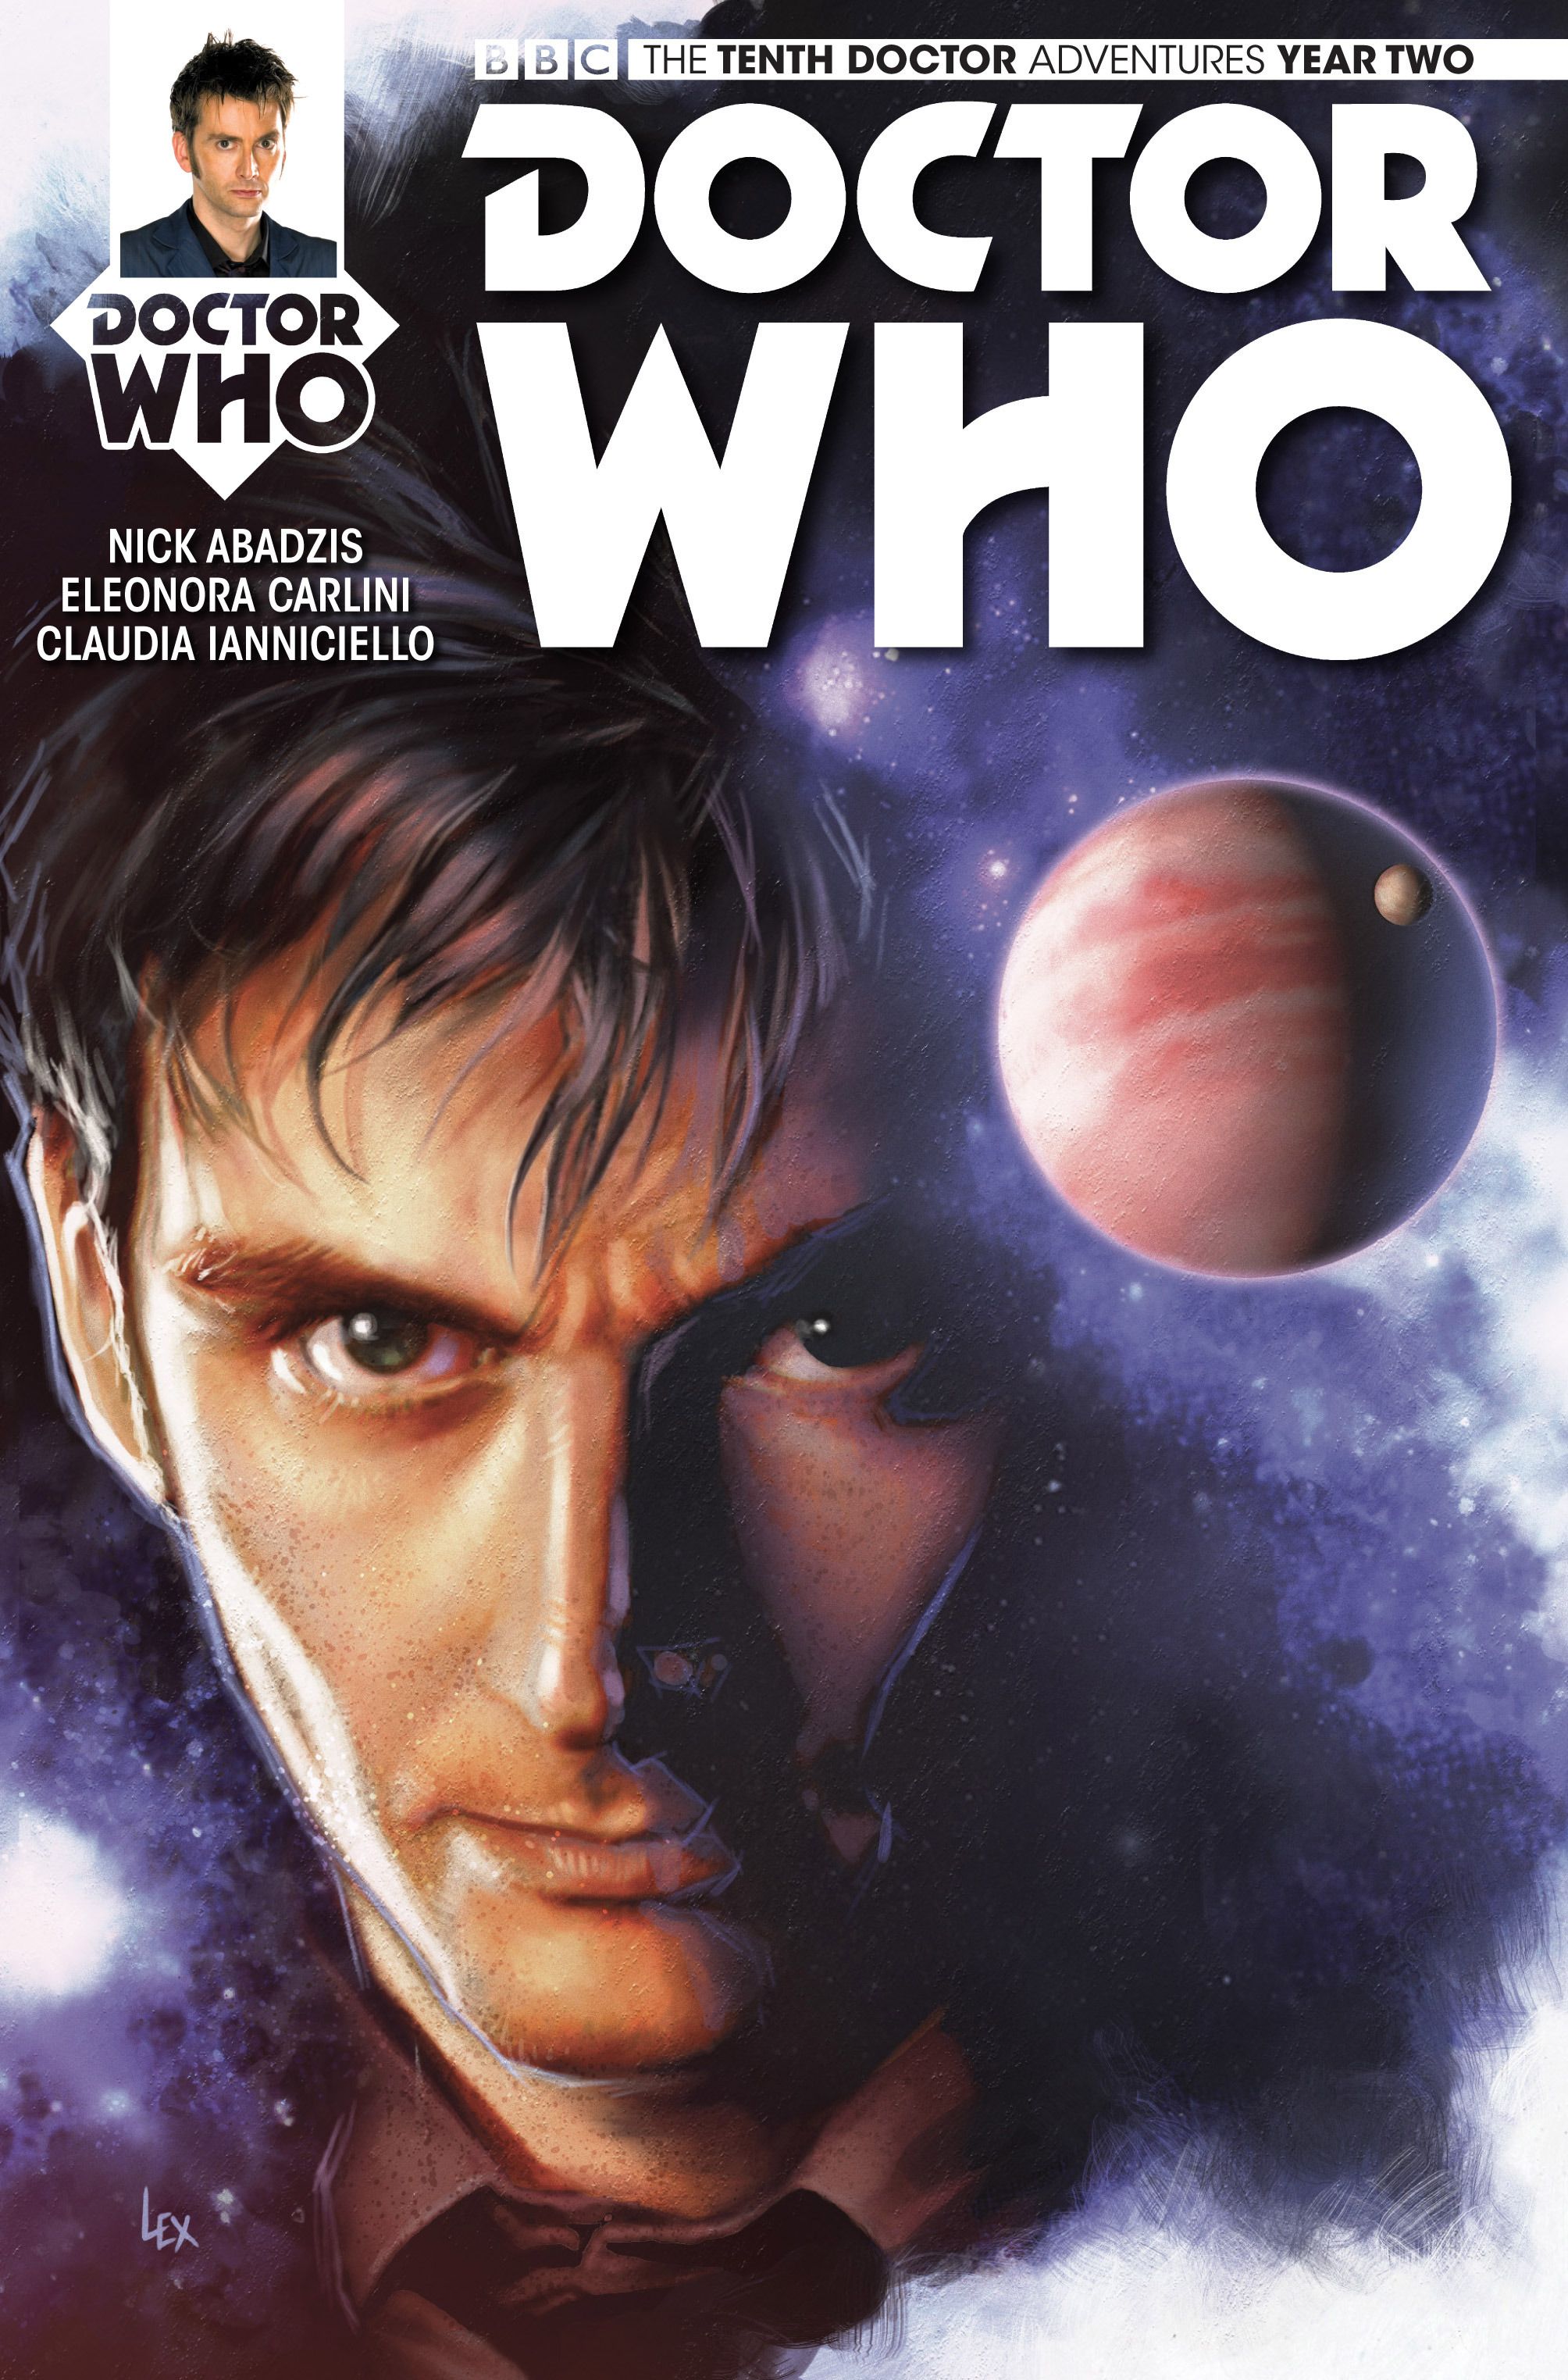 Doctor Who: The Tenth Doctor Year Two 2 Page 1